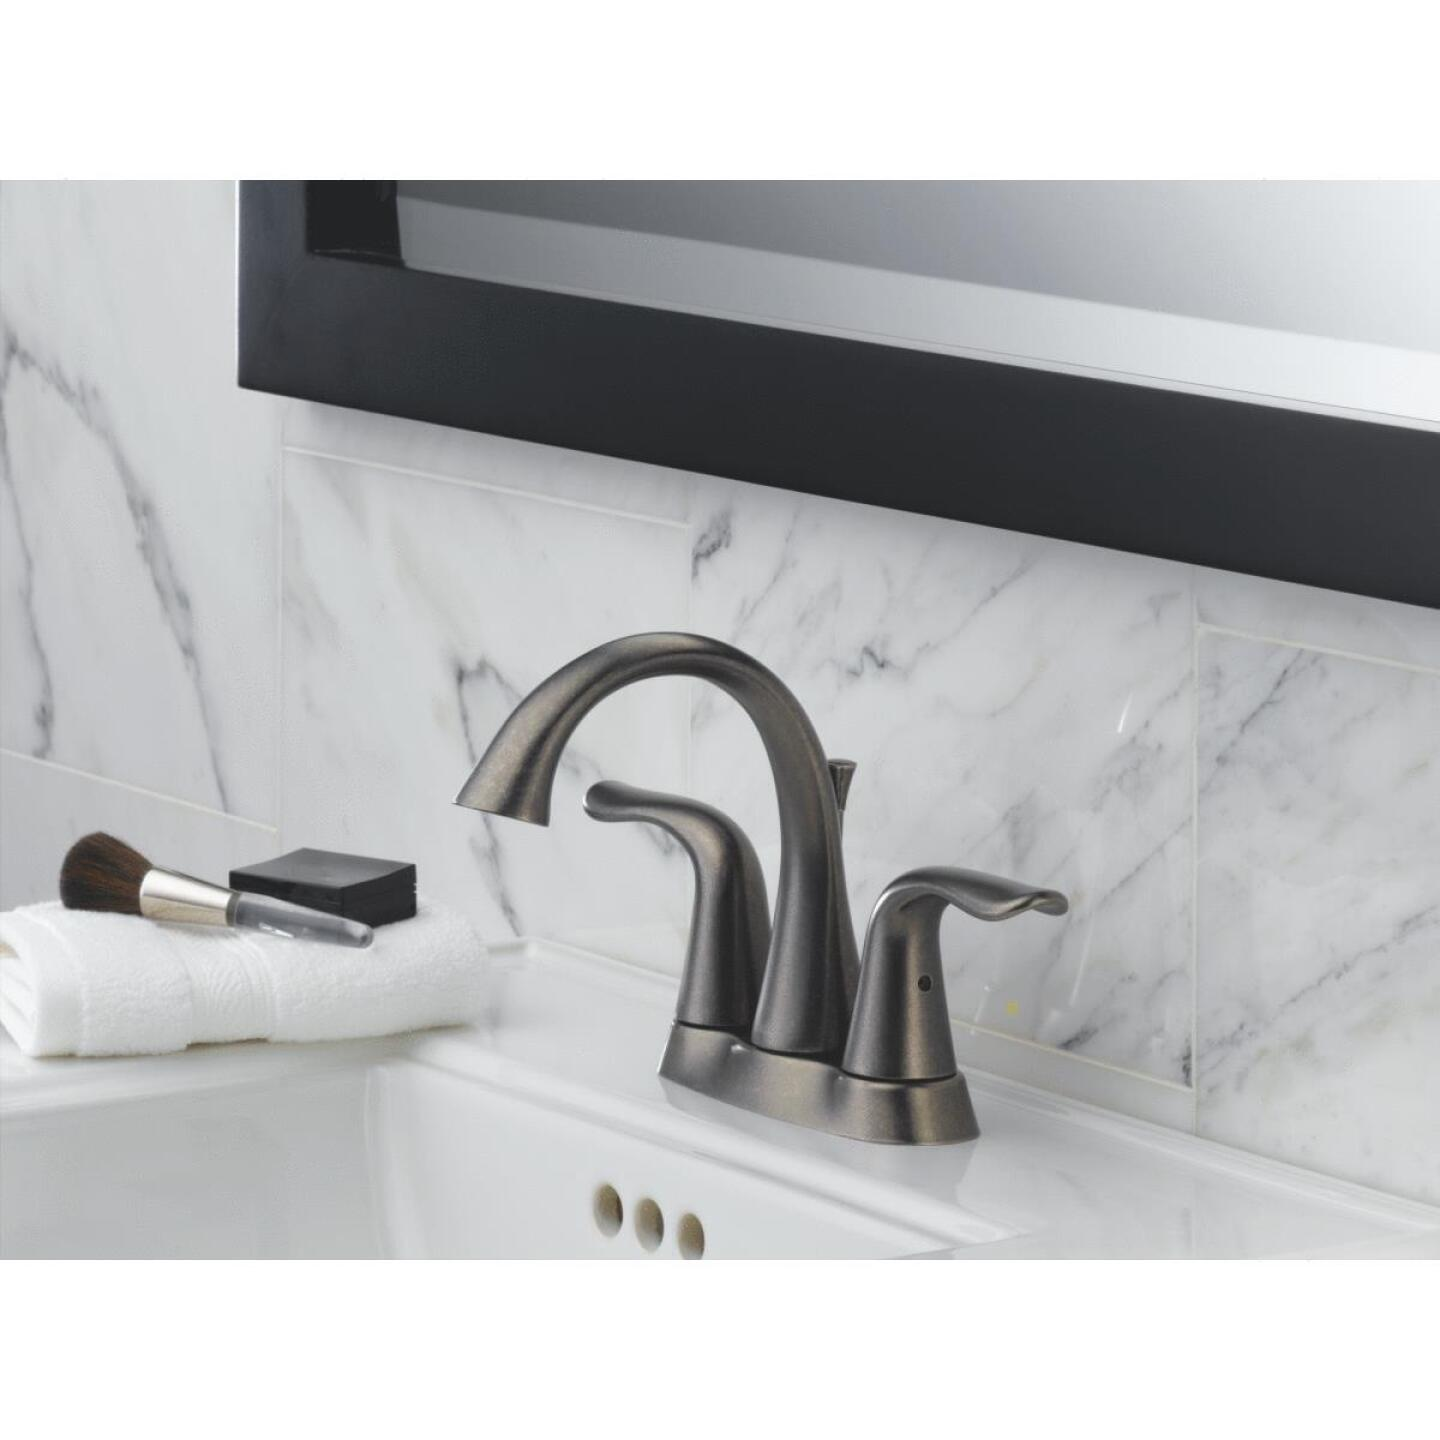 Delta Lahara Stainless 2-Handle Lever 4 In. Centerset Bathroom Faucet with Pop-Up Image 3